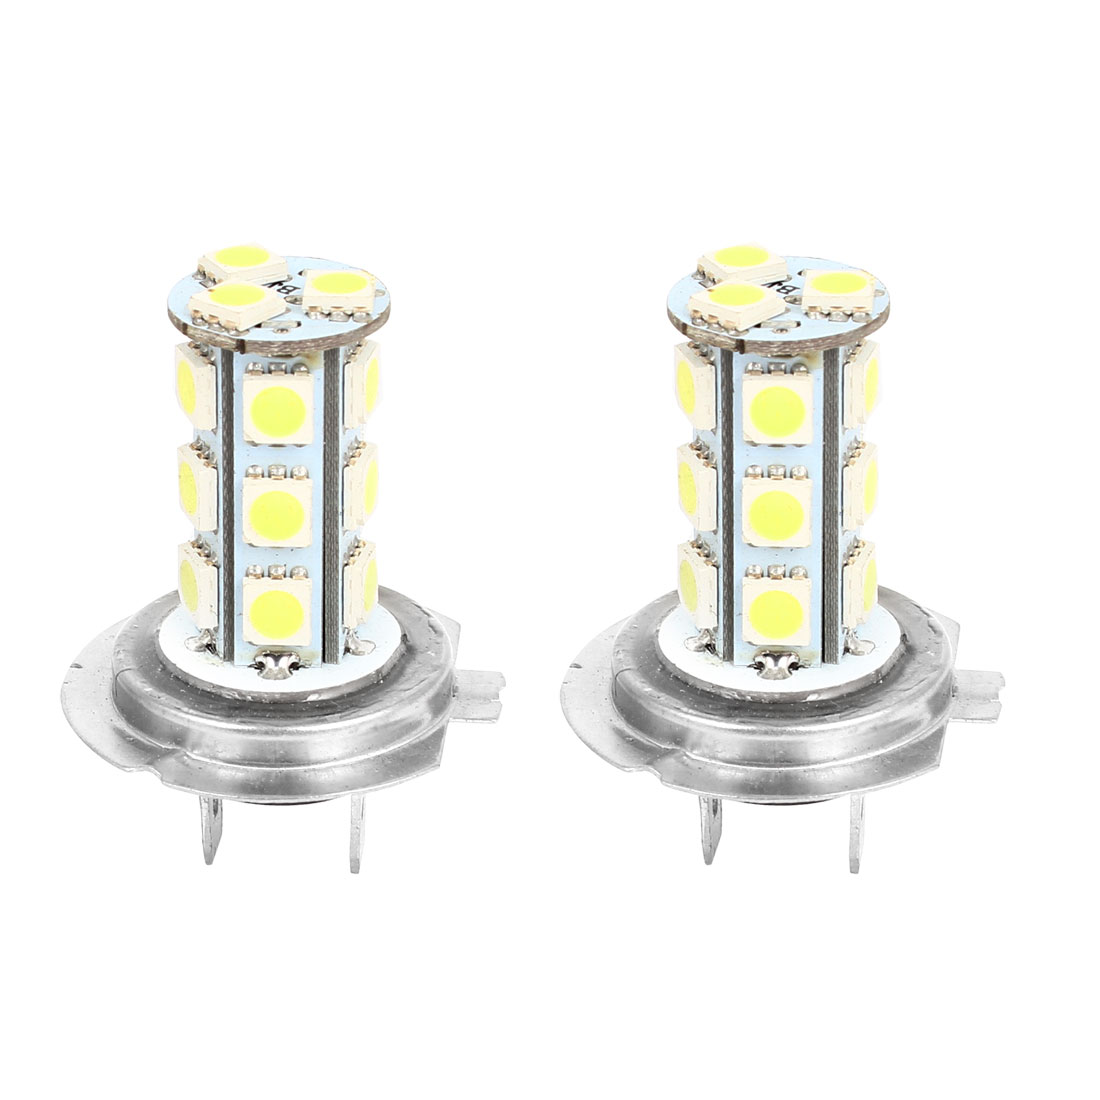 Car H7 18 LED 5050 LED Bulb Headlight Fog Light Lamps DC12V White 2 Pcs